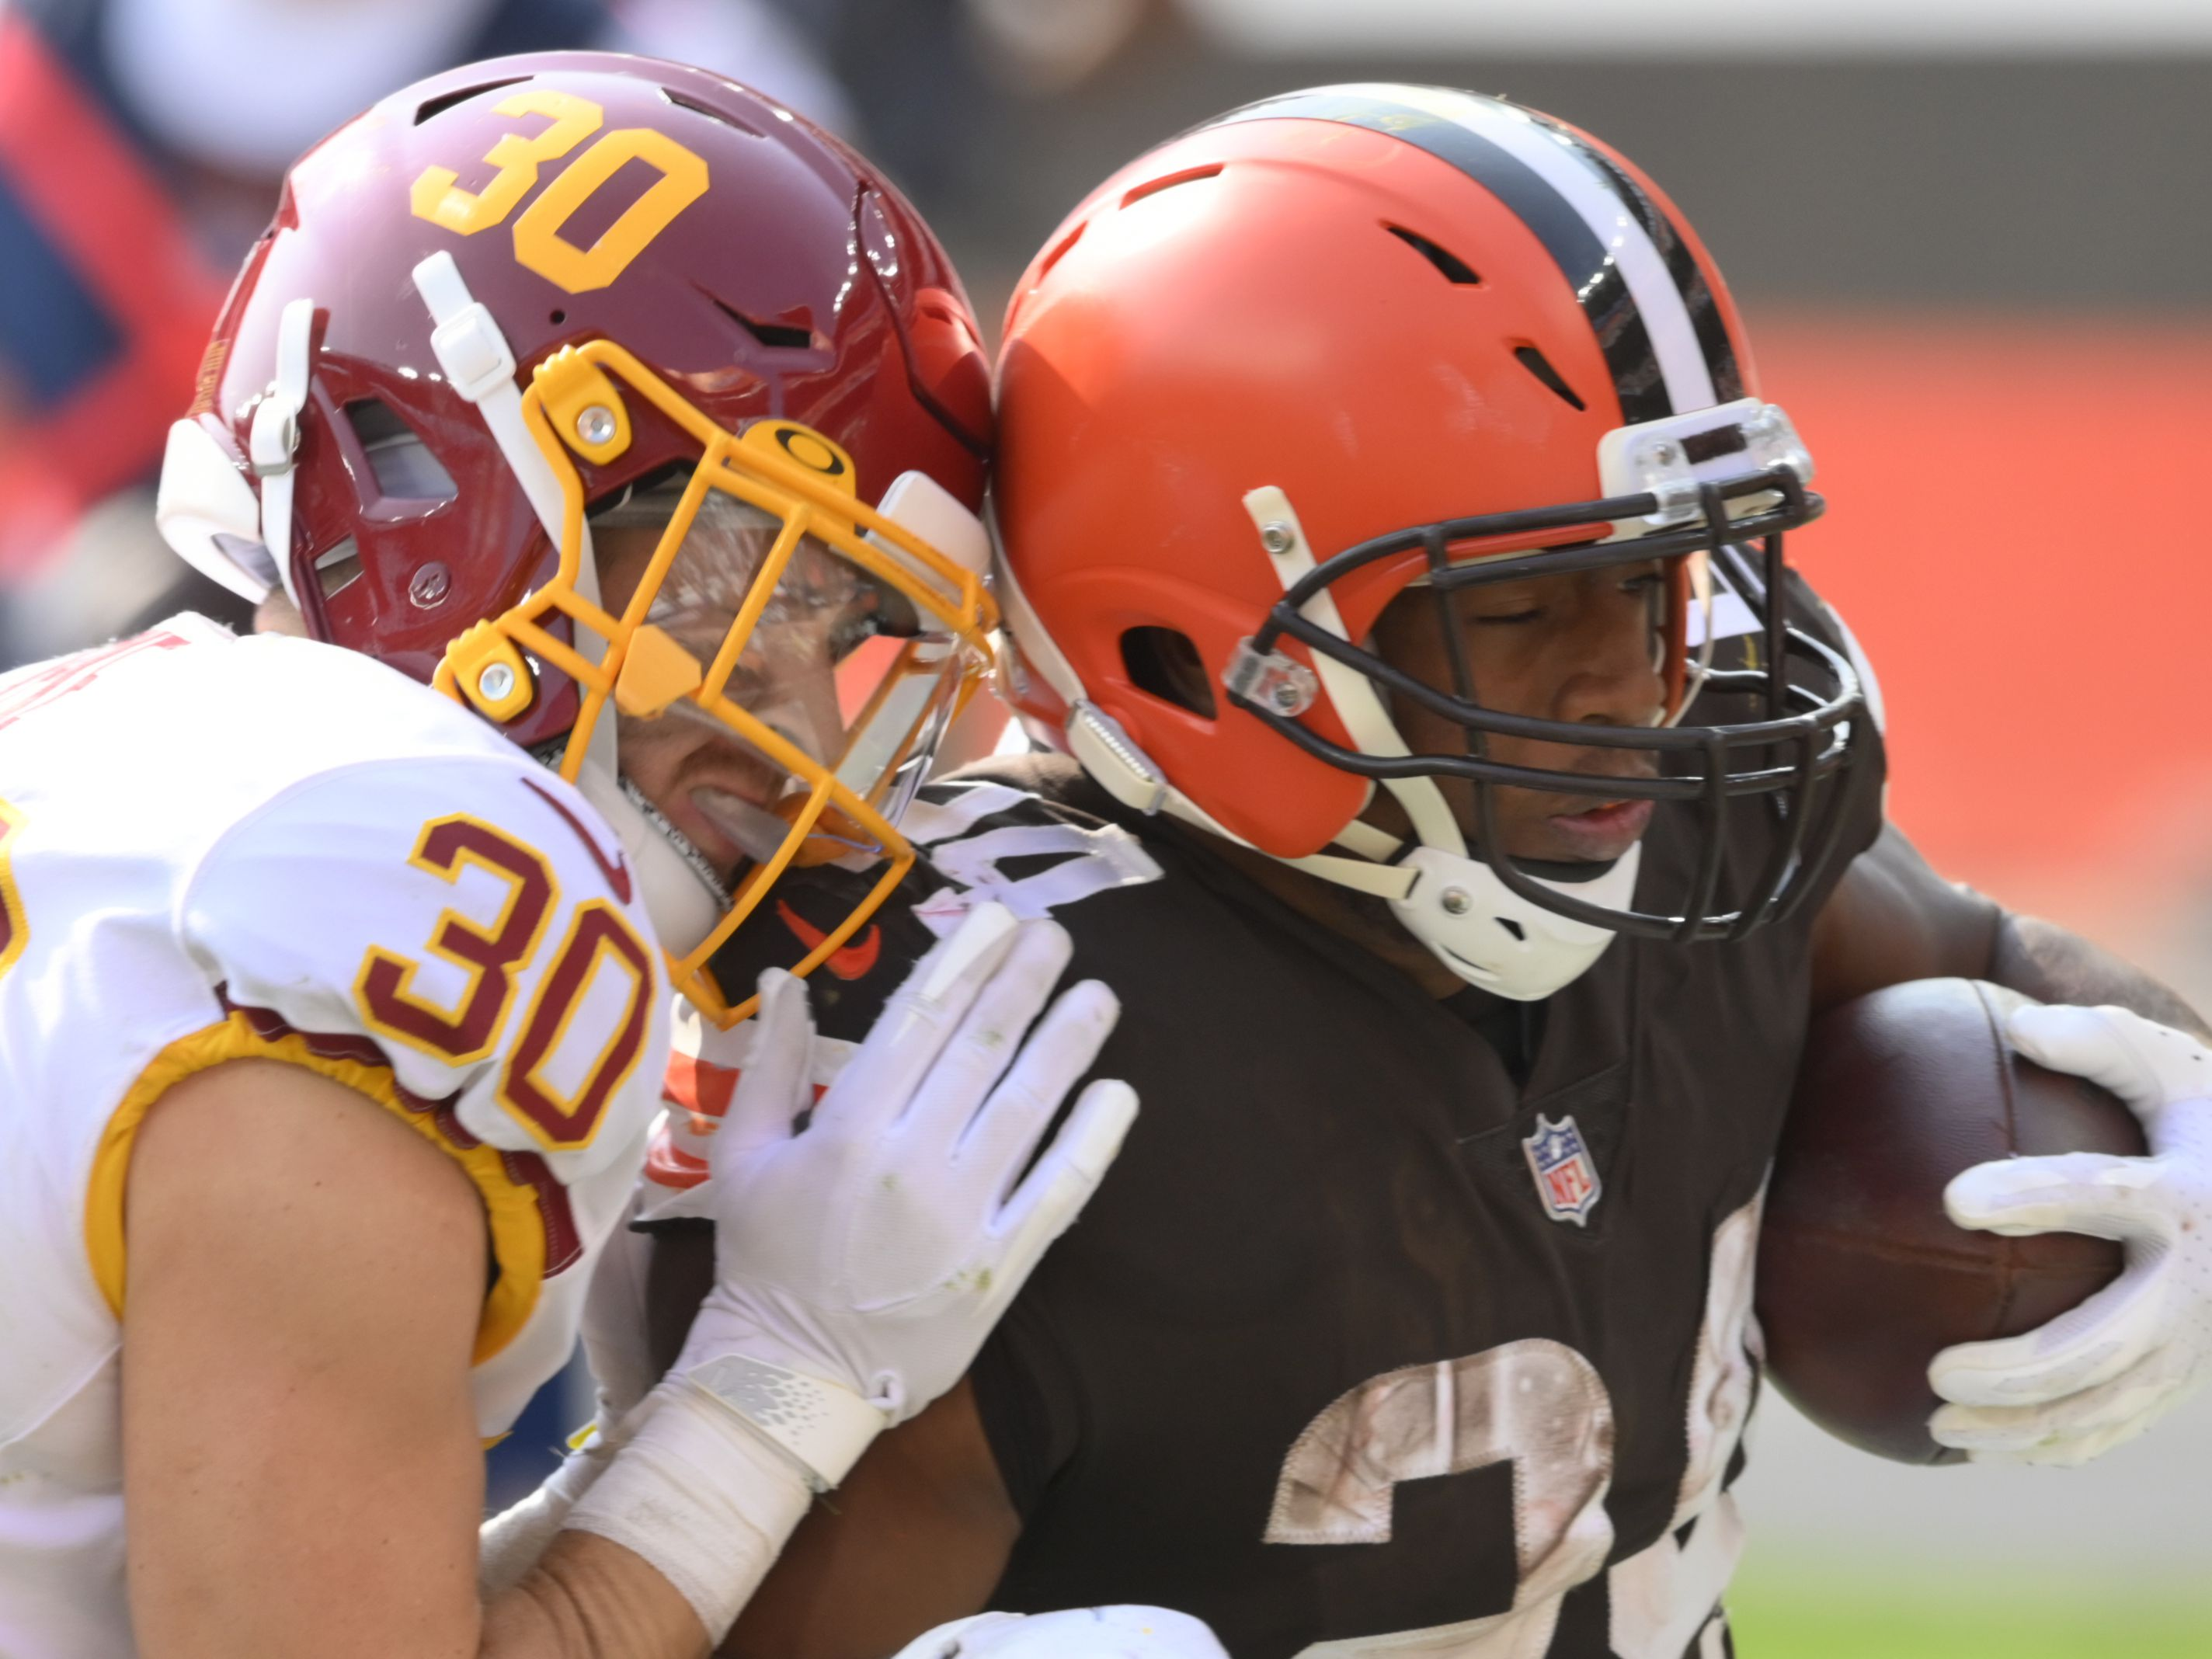 Final: Washington 20, Browns 34